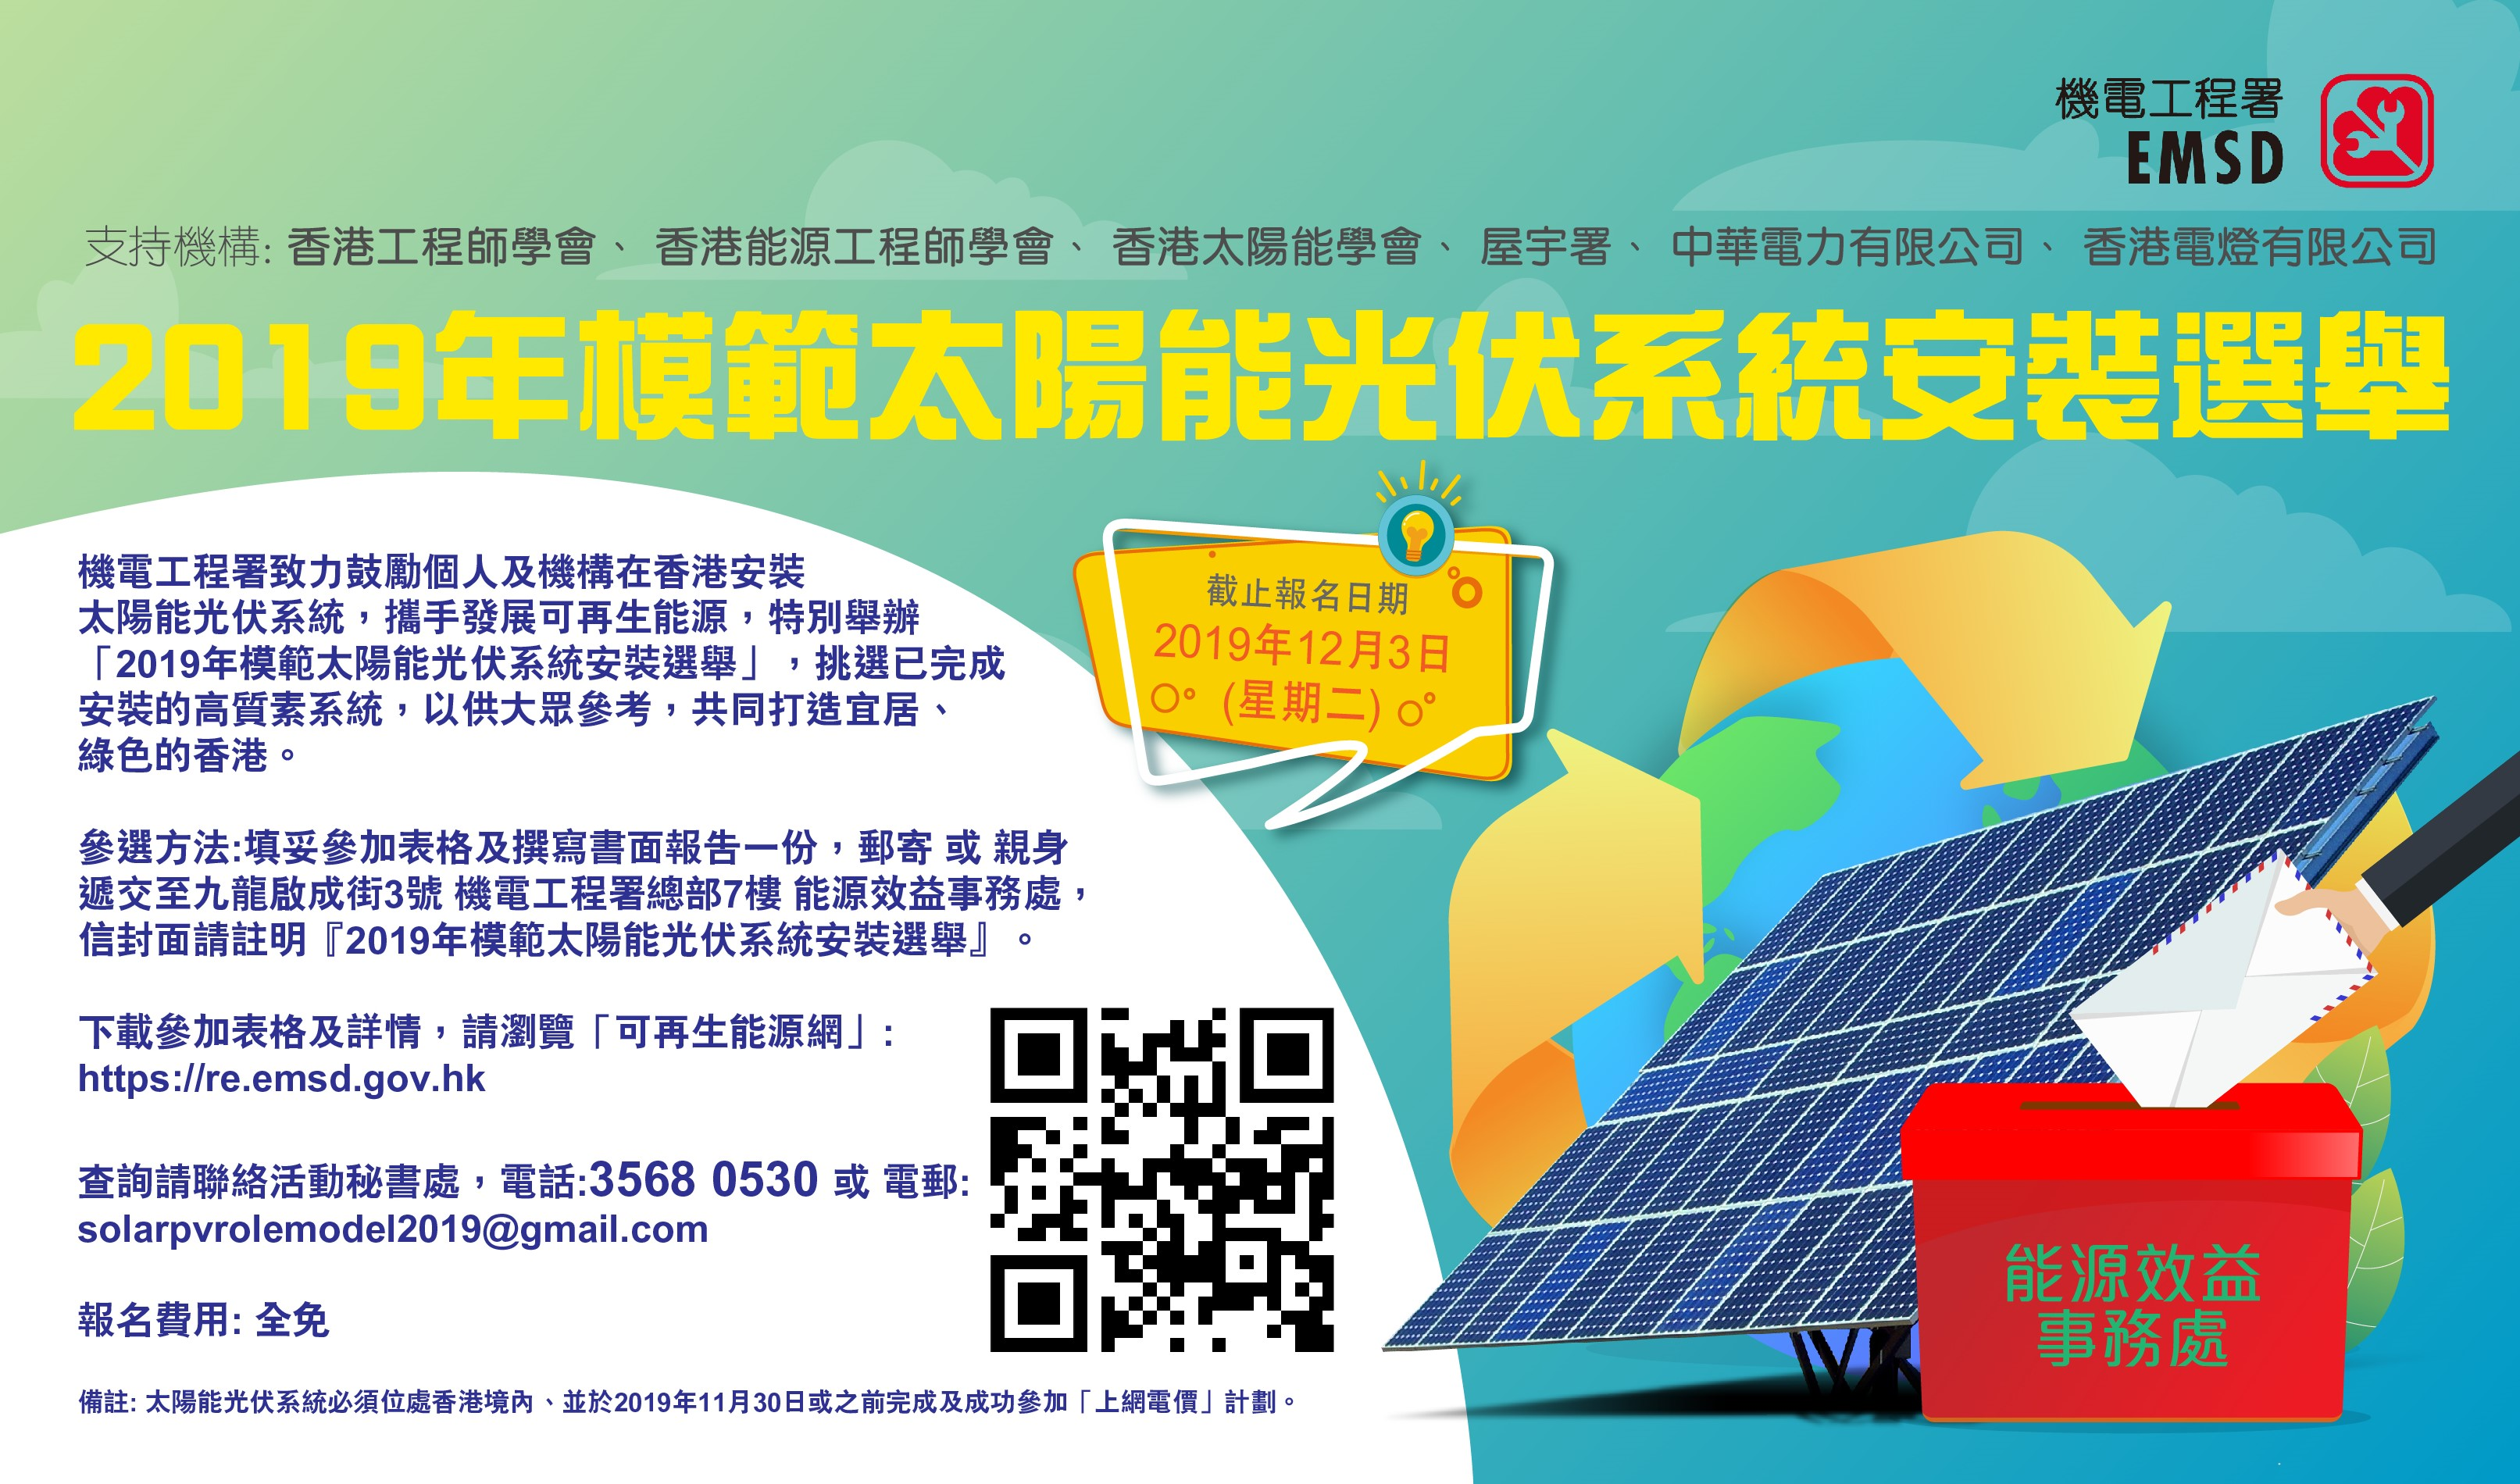 Solar Photovoltaic System Installation Role Model Election 2019 (Chinese Only)